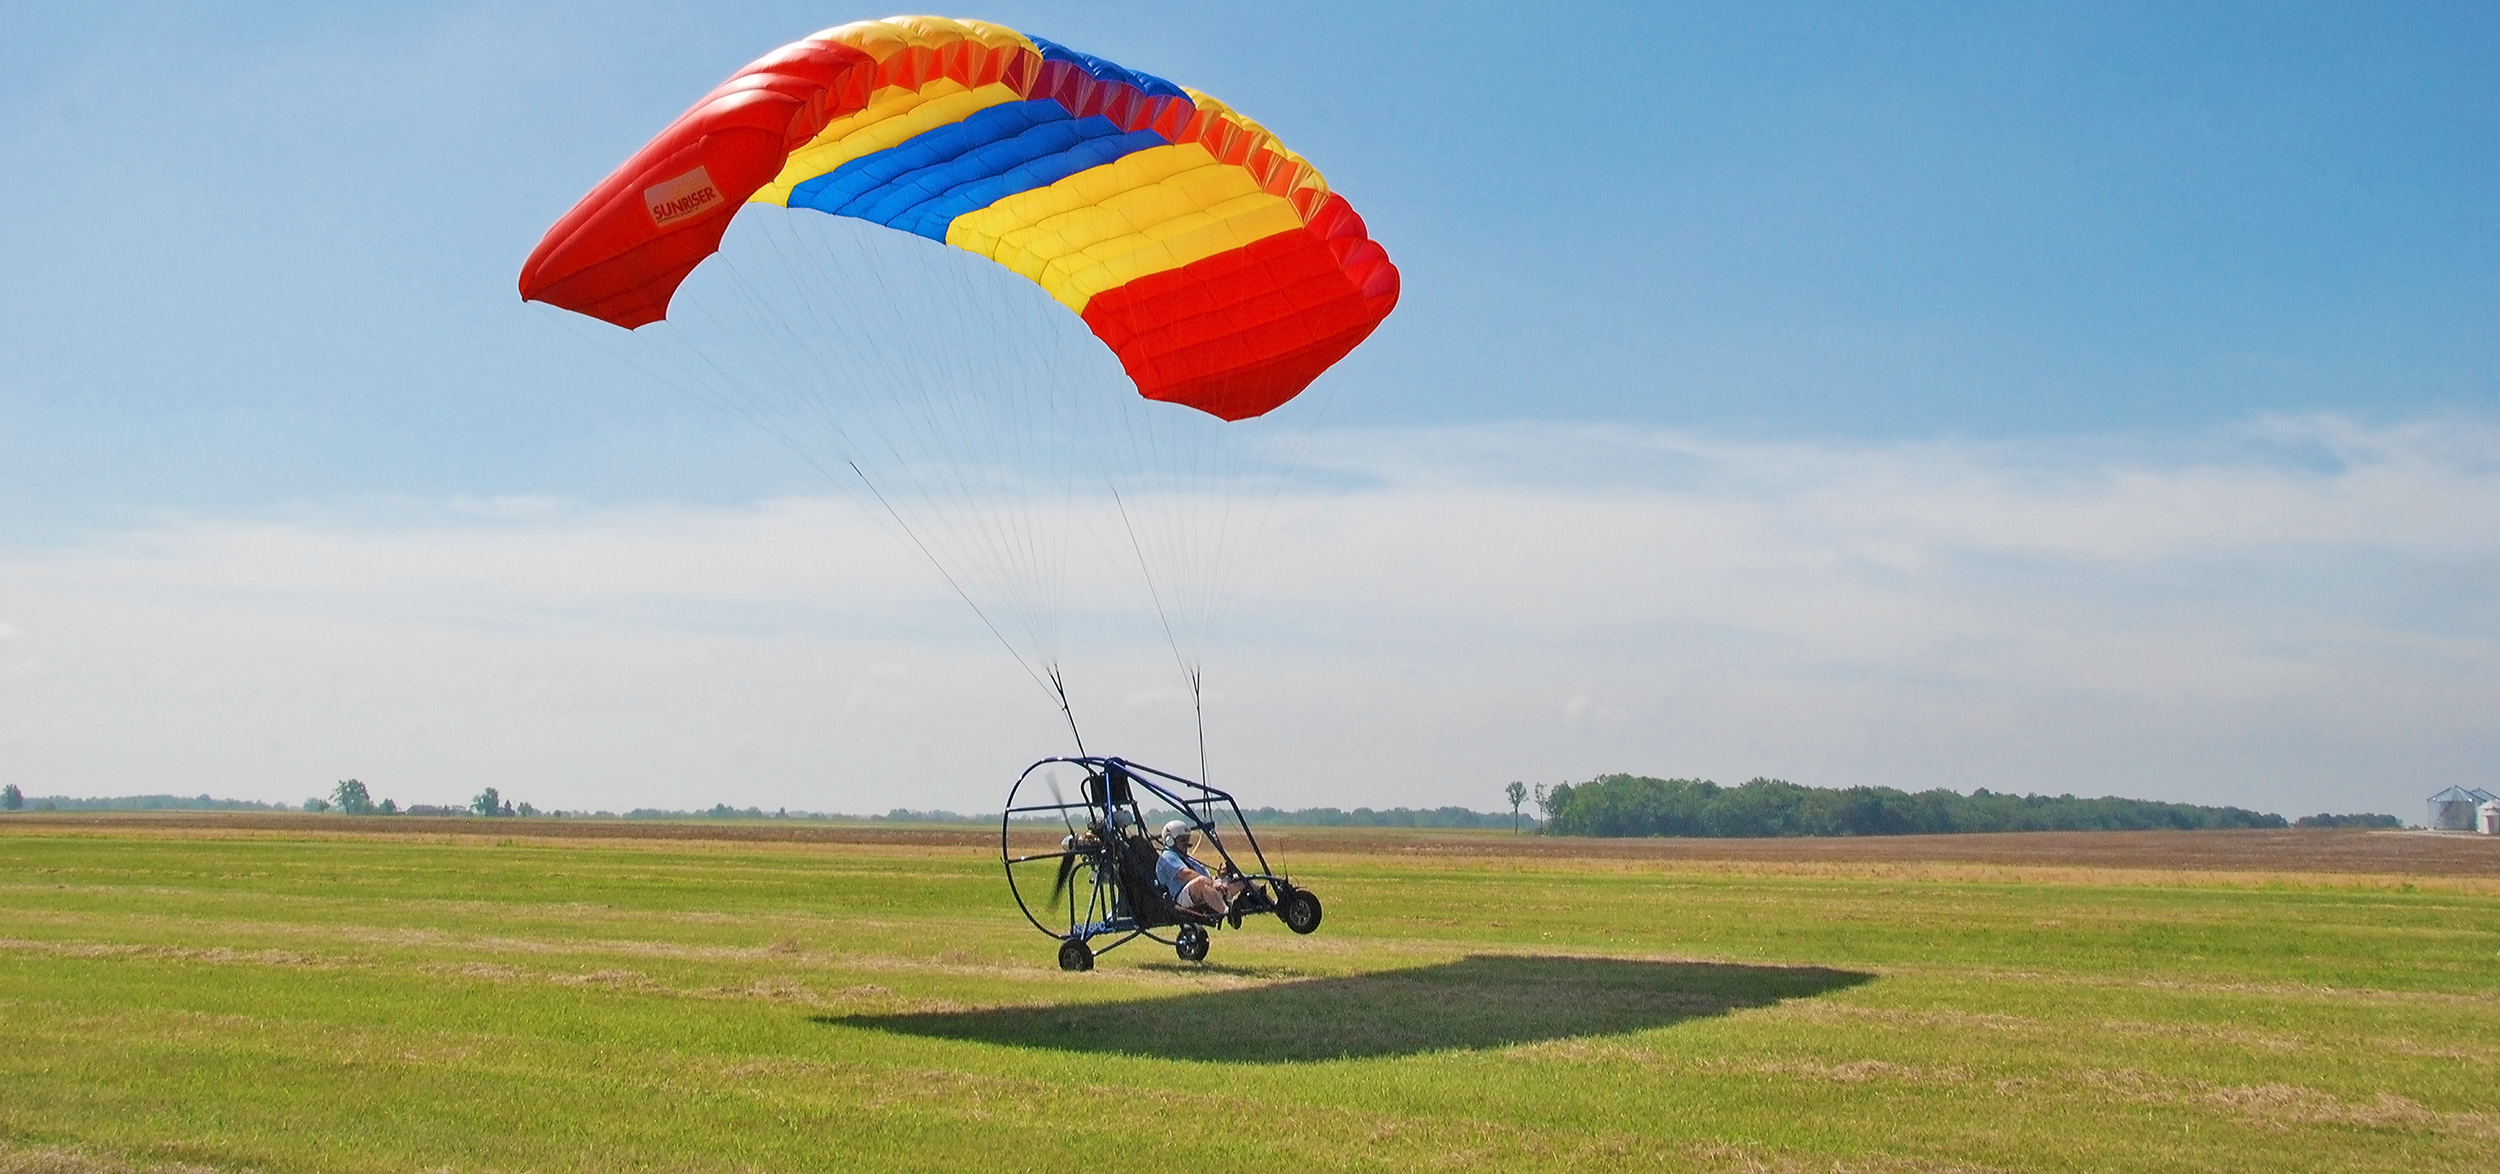 Easy Flight Powered Parachutes | Realize Your Dream of Flight